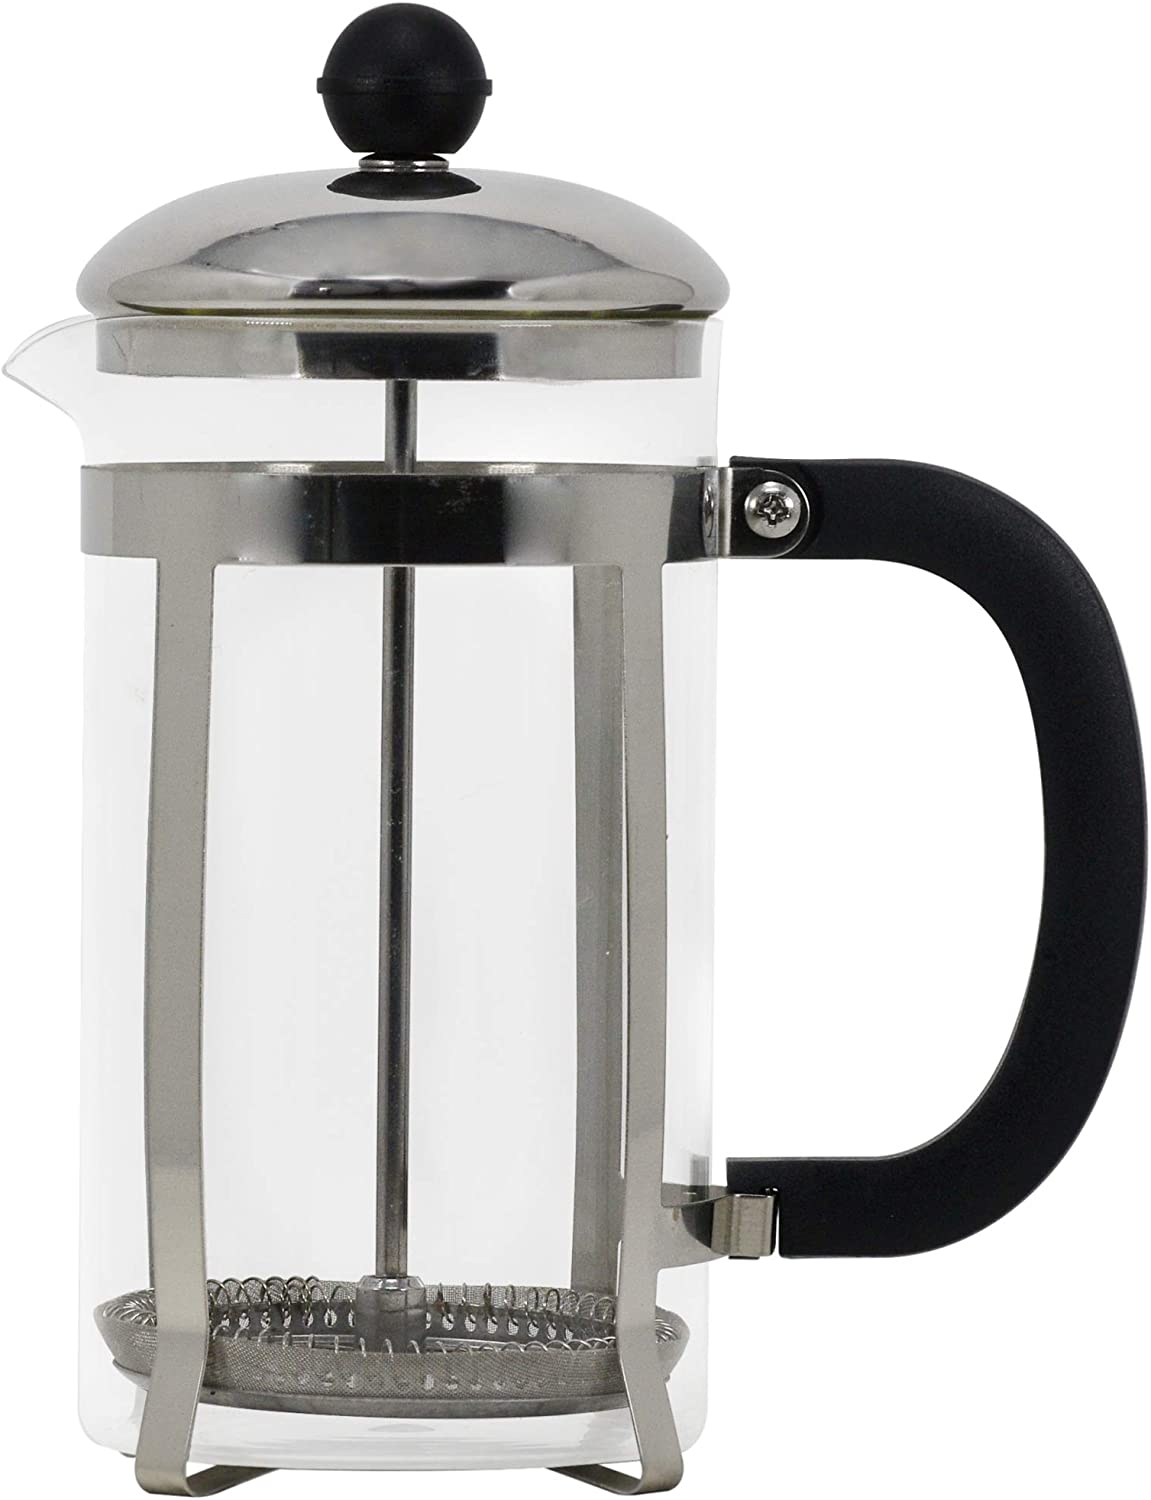 Copper French Press Coffee Maker with Stainless Steel Plunger, Lid, and Frame 100% BPA Free Heat Resistant Borosilicate Glass Kitchen Thermal Brewer Steep Coffee, Tea (Silver, 600 ml/21 Oz.)